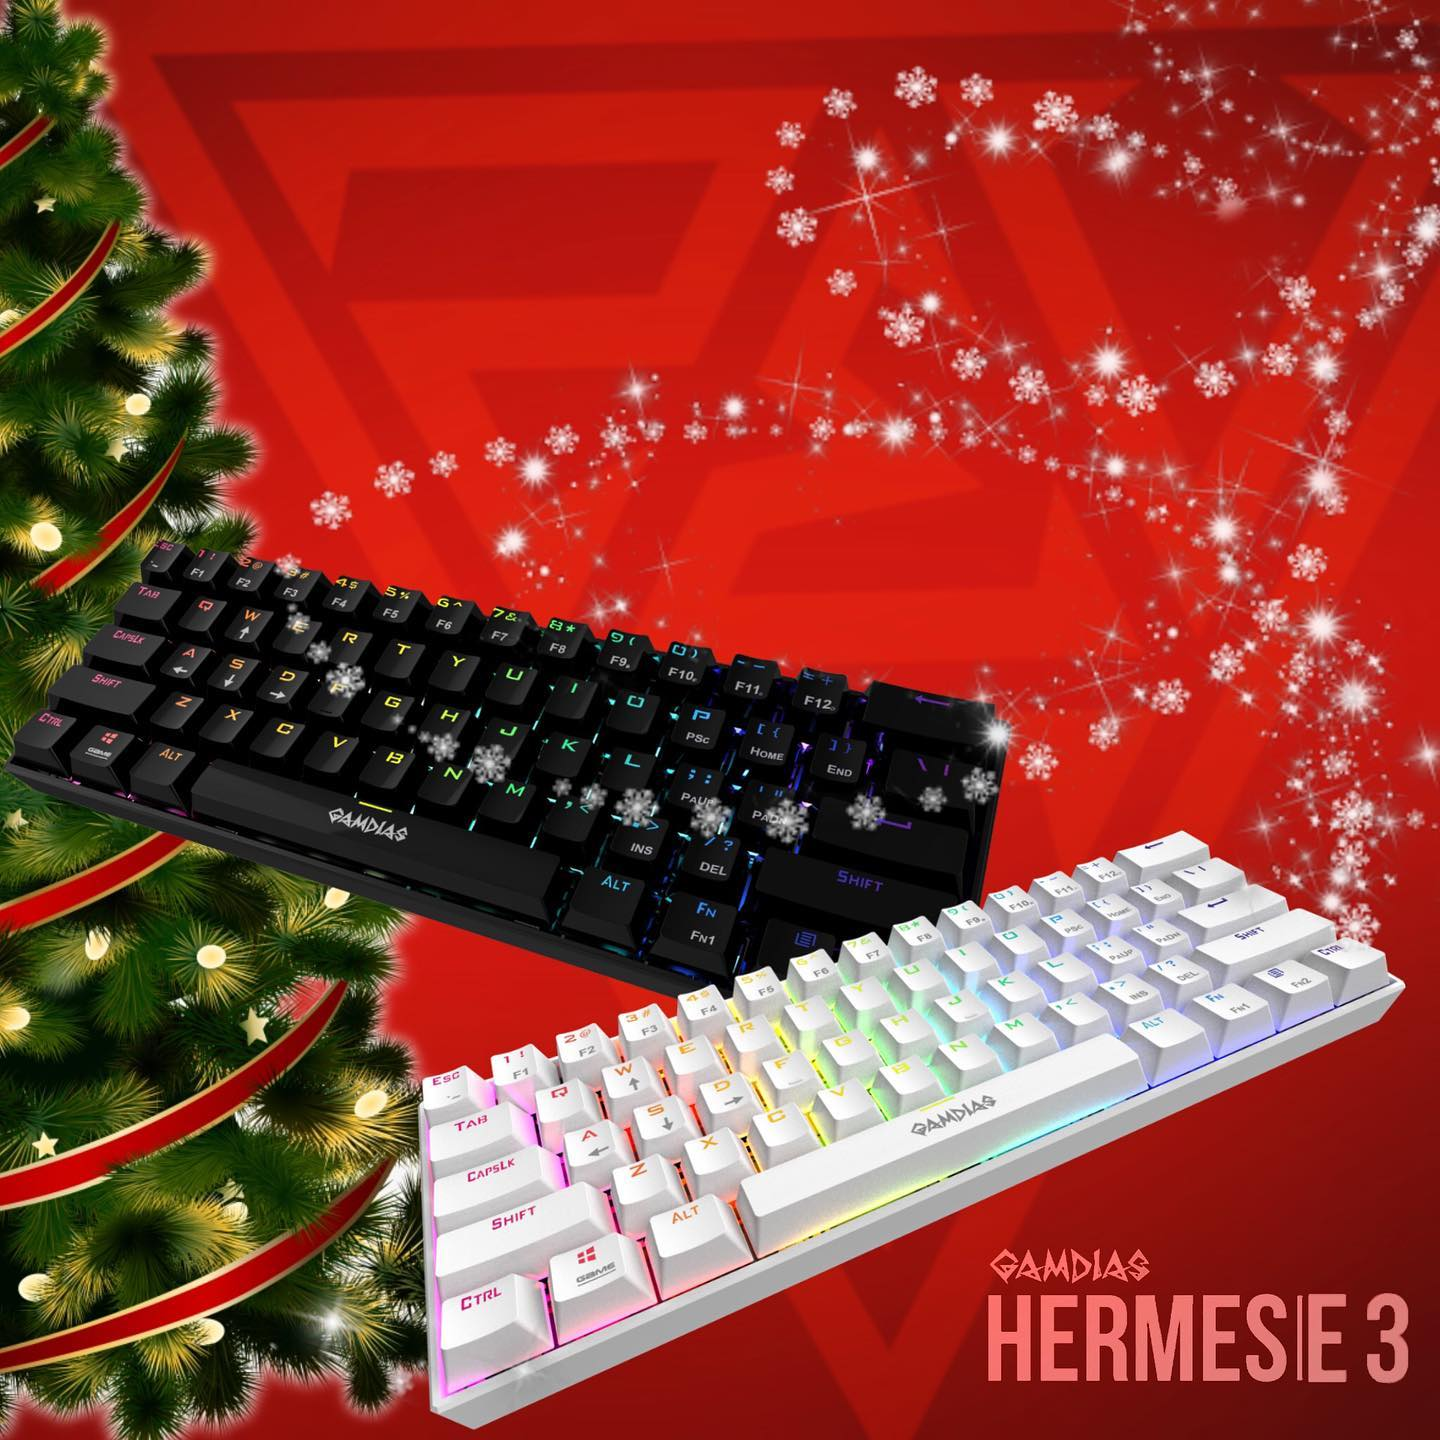 Ready for 🎁 this Holiday?! ✌🏼More Days Before Christmas☃️! 🎉Happy Holidays from GAMDIAS to all of you!🎉... ============================== HERMES|E3 GAMDIAS First 60% Mechanical Gaming Keyboard! Gain back your gaming estate of your desk! ==============================